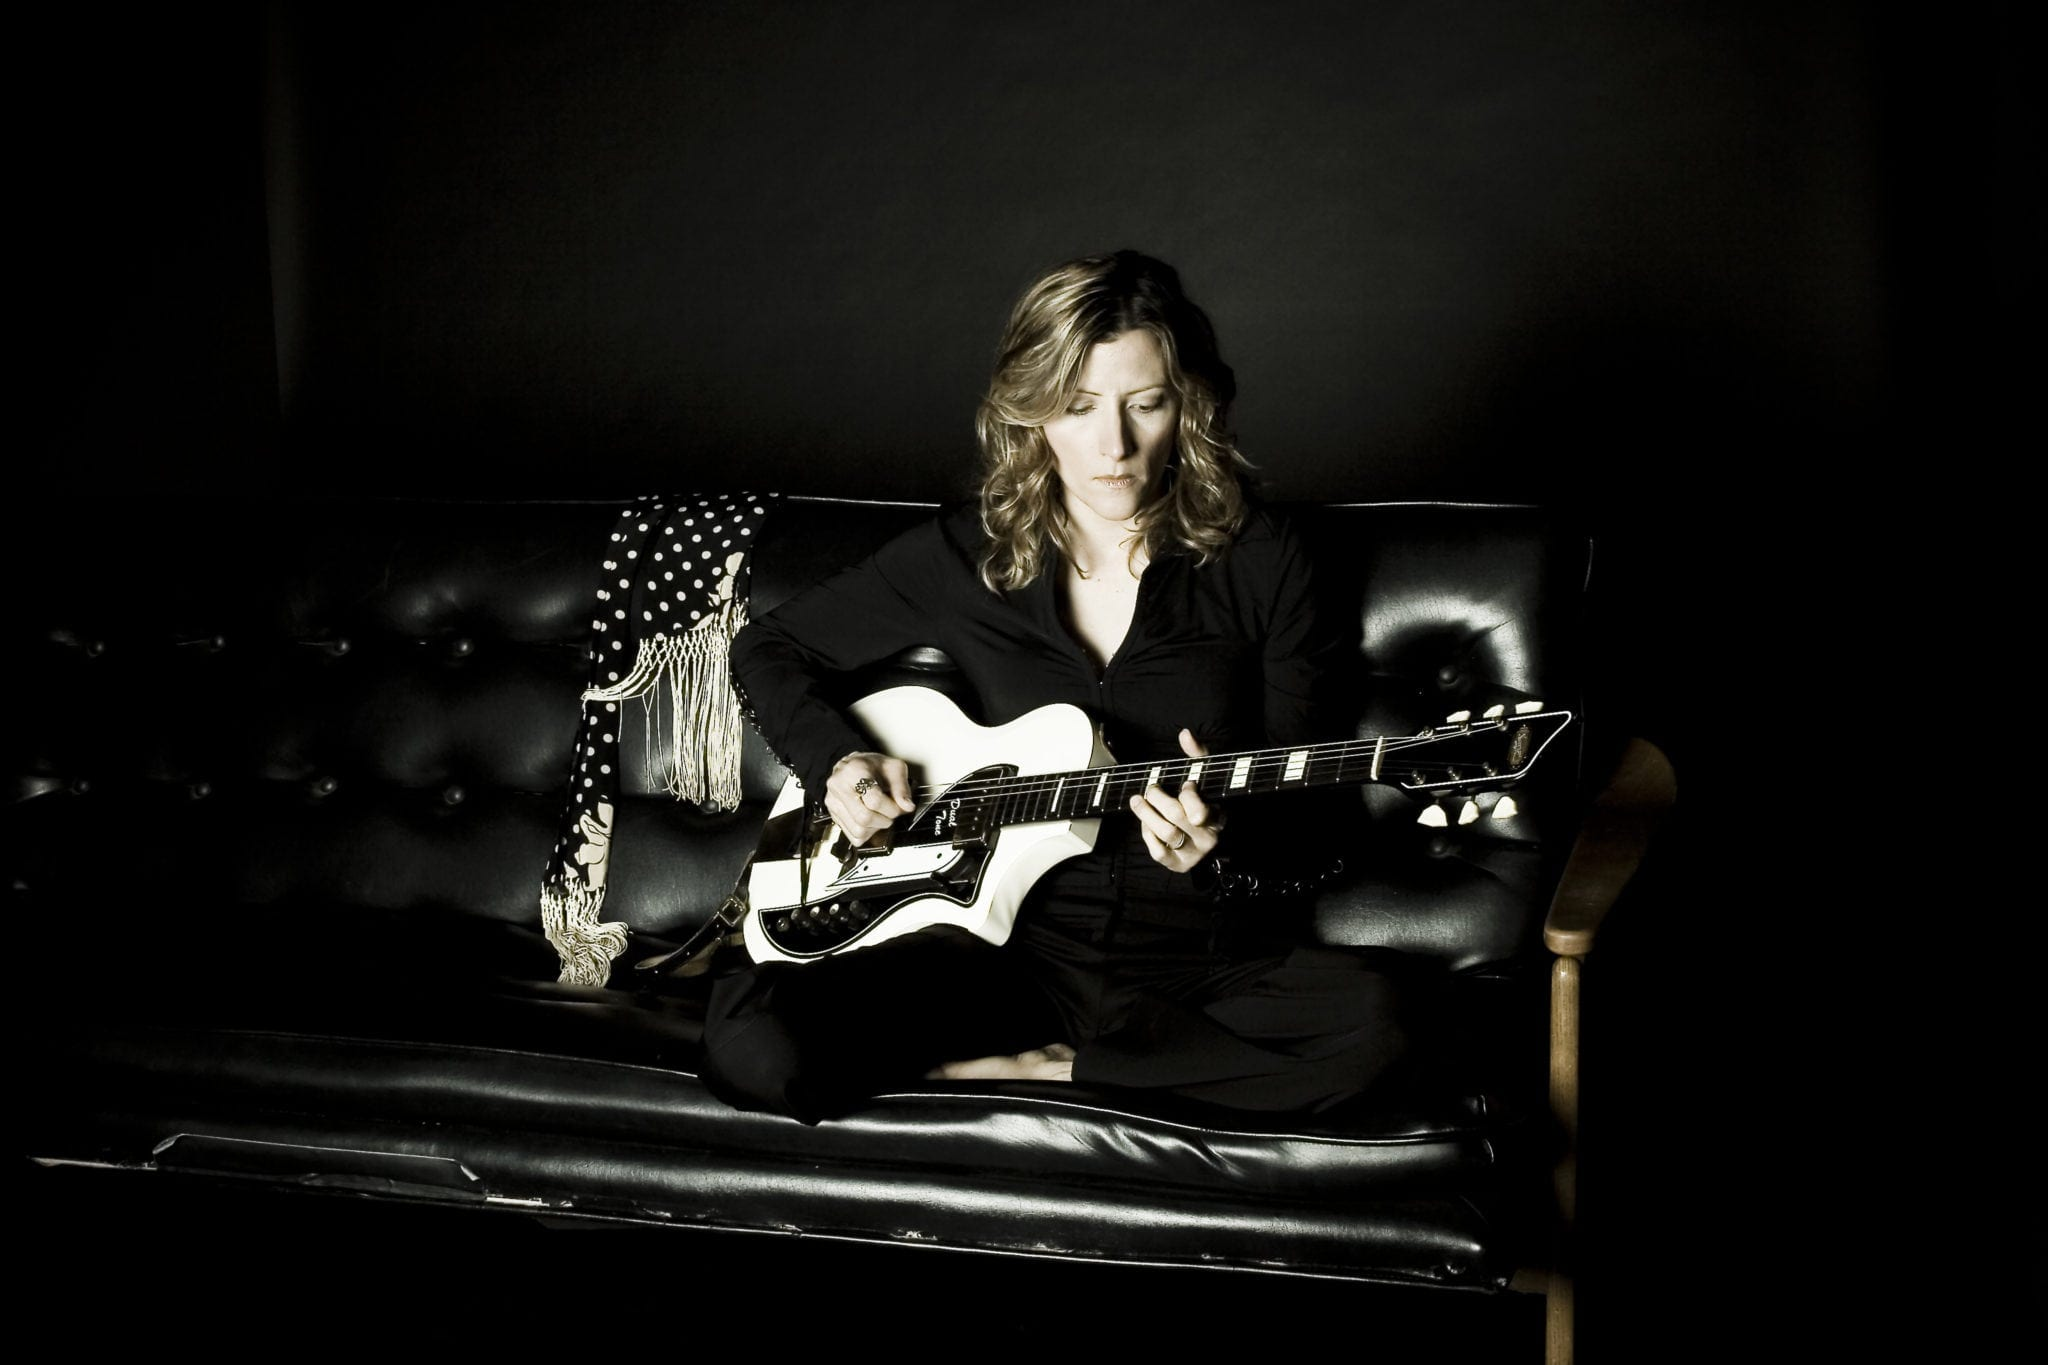 Michelle Malone sitting on a couch playing guitar.